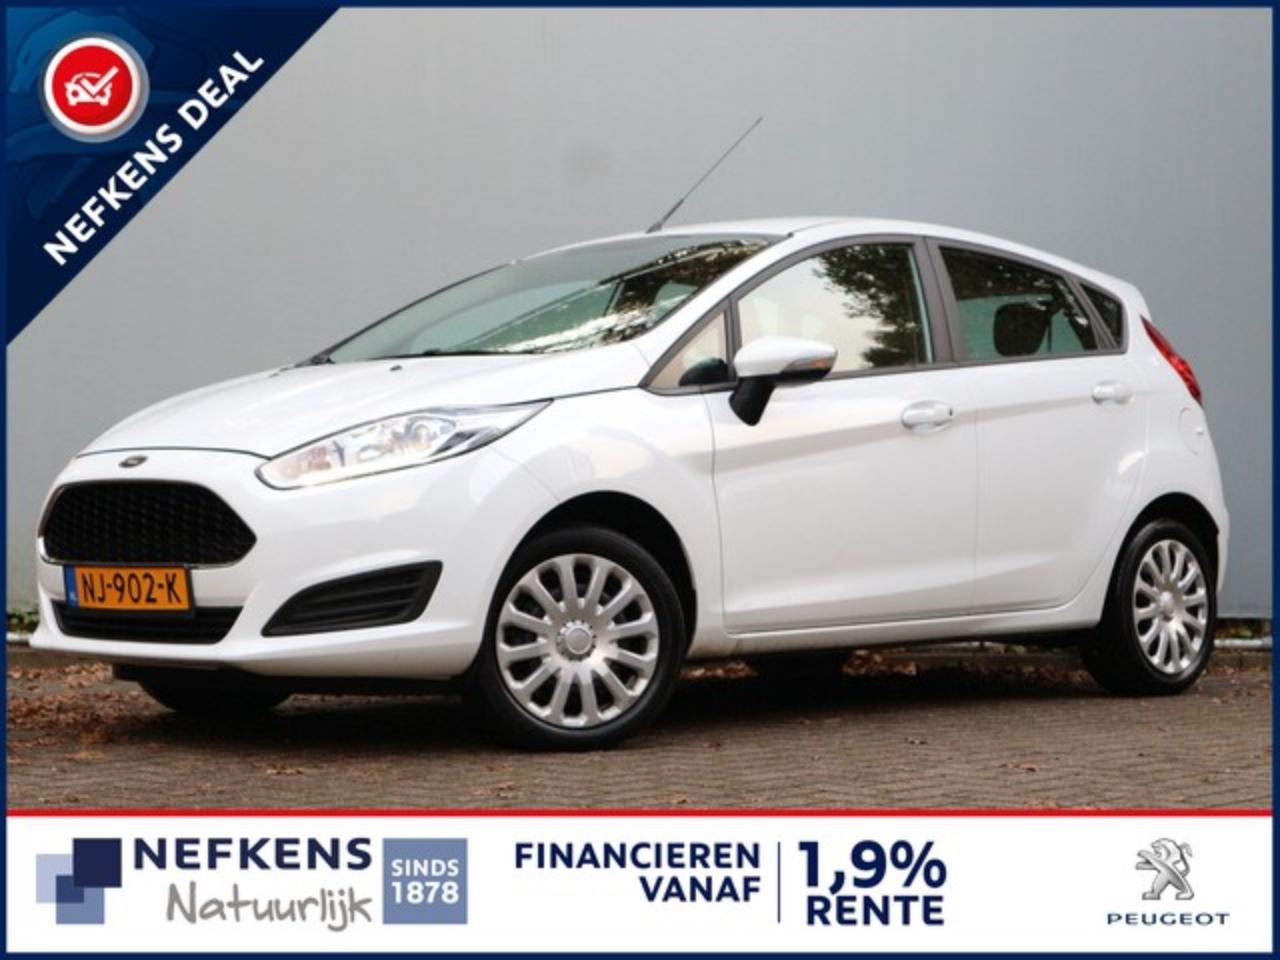 Ford Fiesta 1.0 66 PK STYLE ESSENTIAL | NAVIGATIE | AIRCO | BL